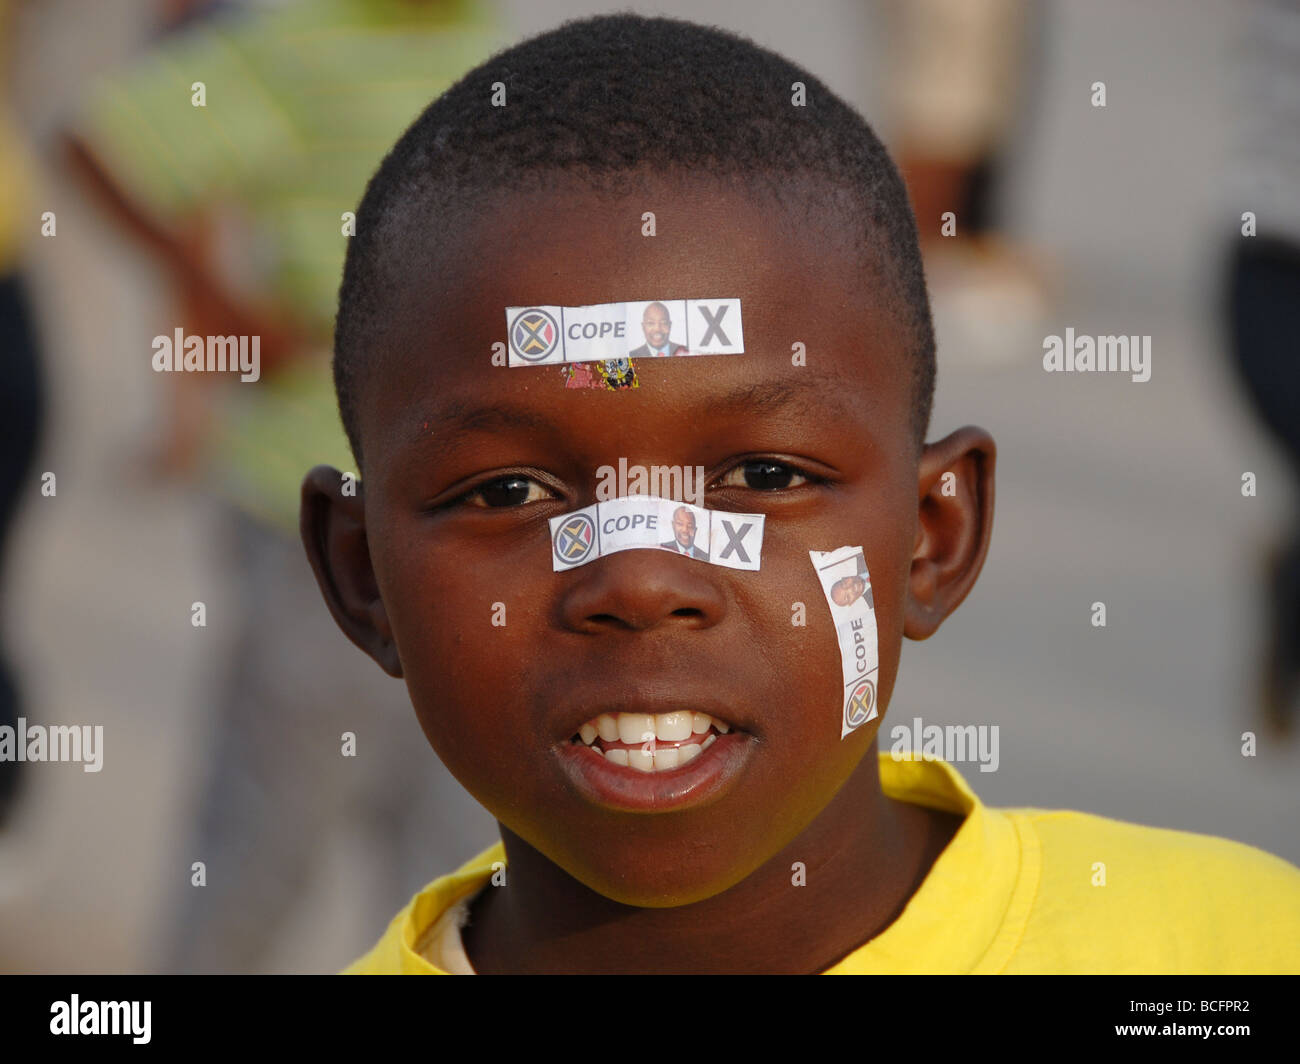 Young boy, campaining for COPE, for the 2009 elections - Stock Image